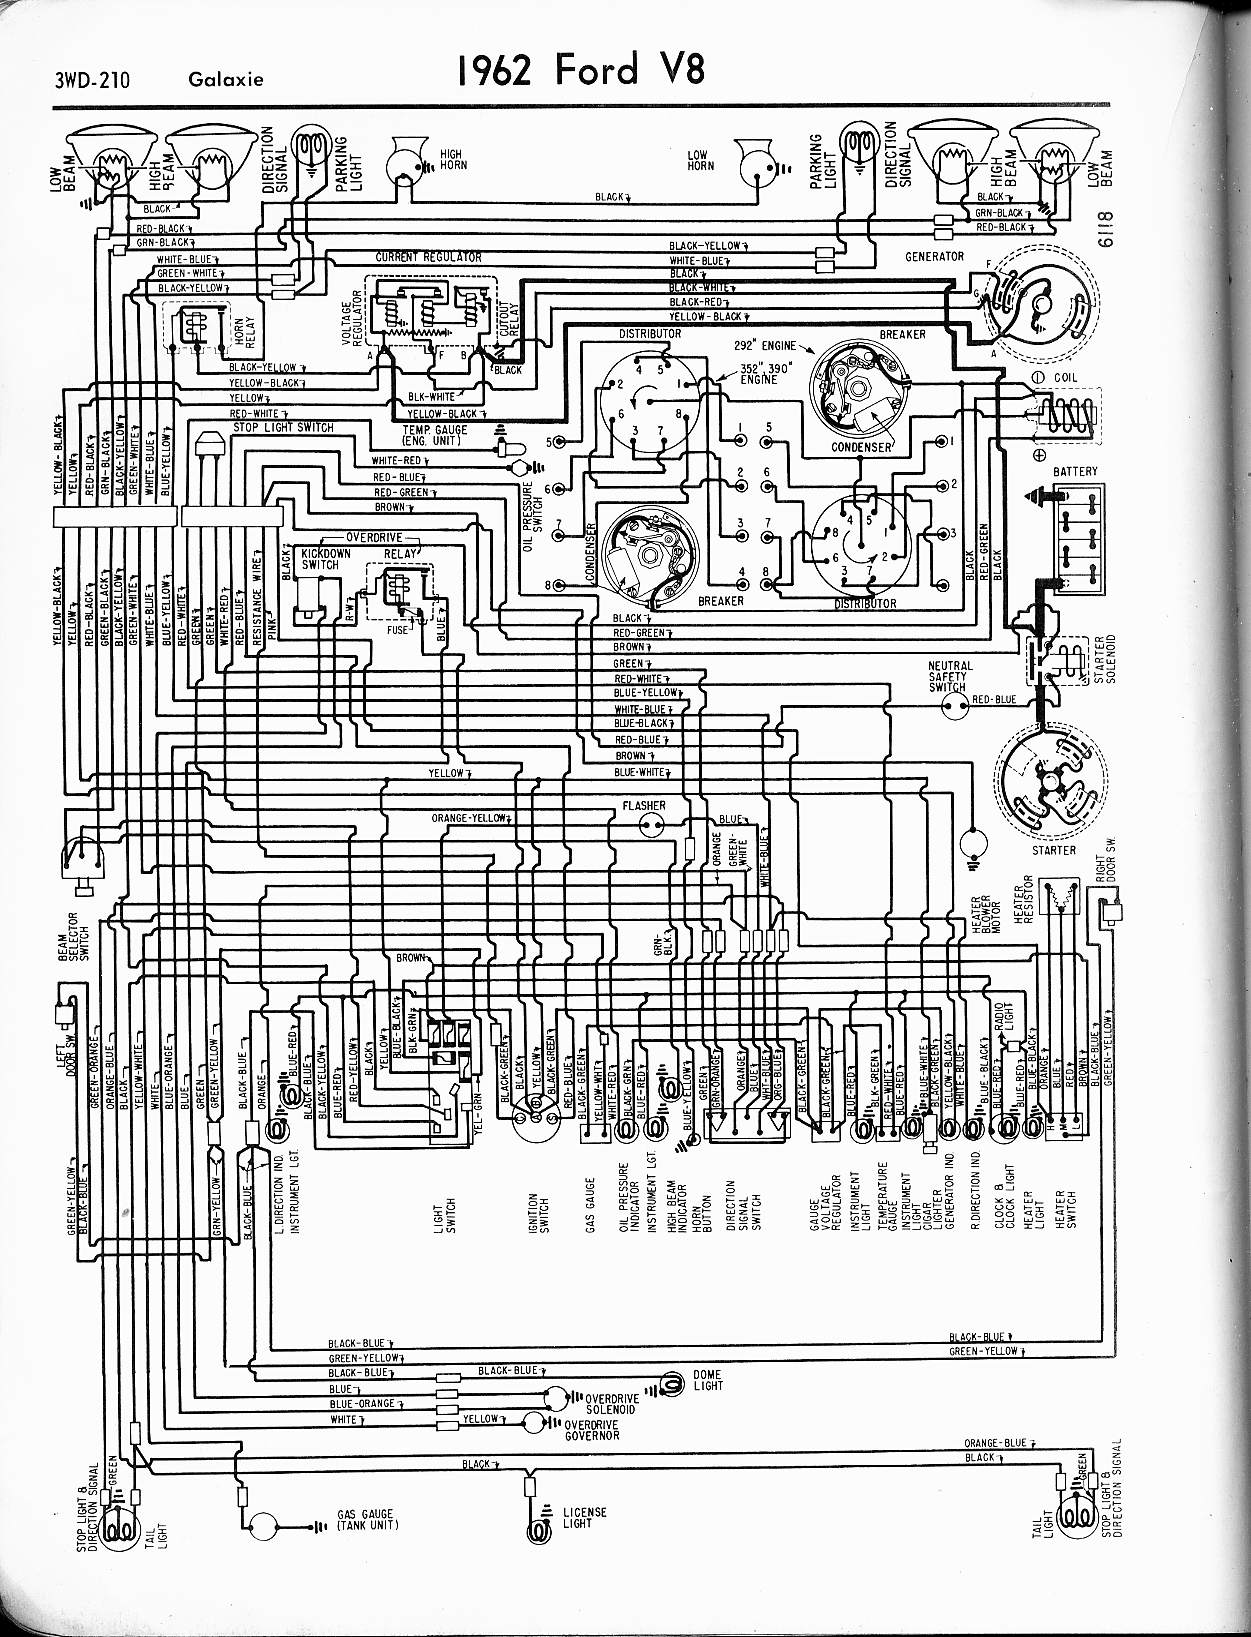 Wiring Diagram 1966 Mustang Schematic Library Engine 1963 Ford Galaxie Detailed Schematics Rh Lelandlutheran Com